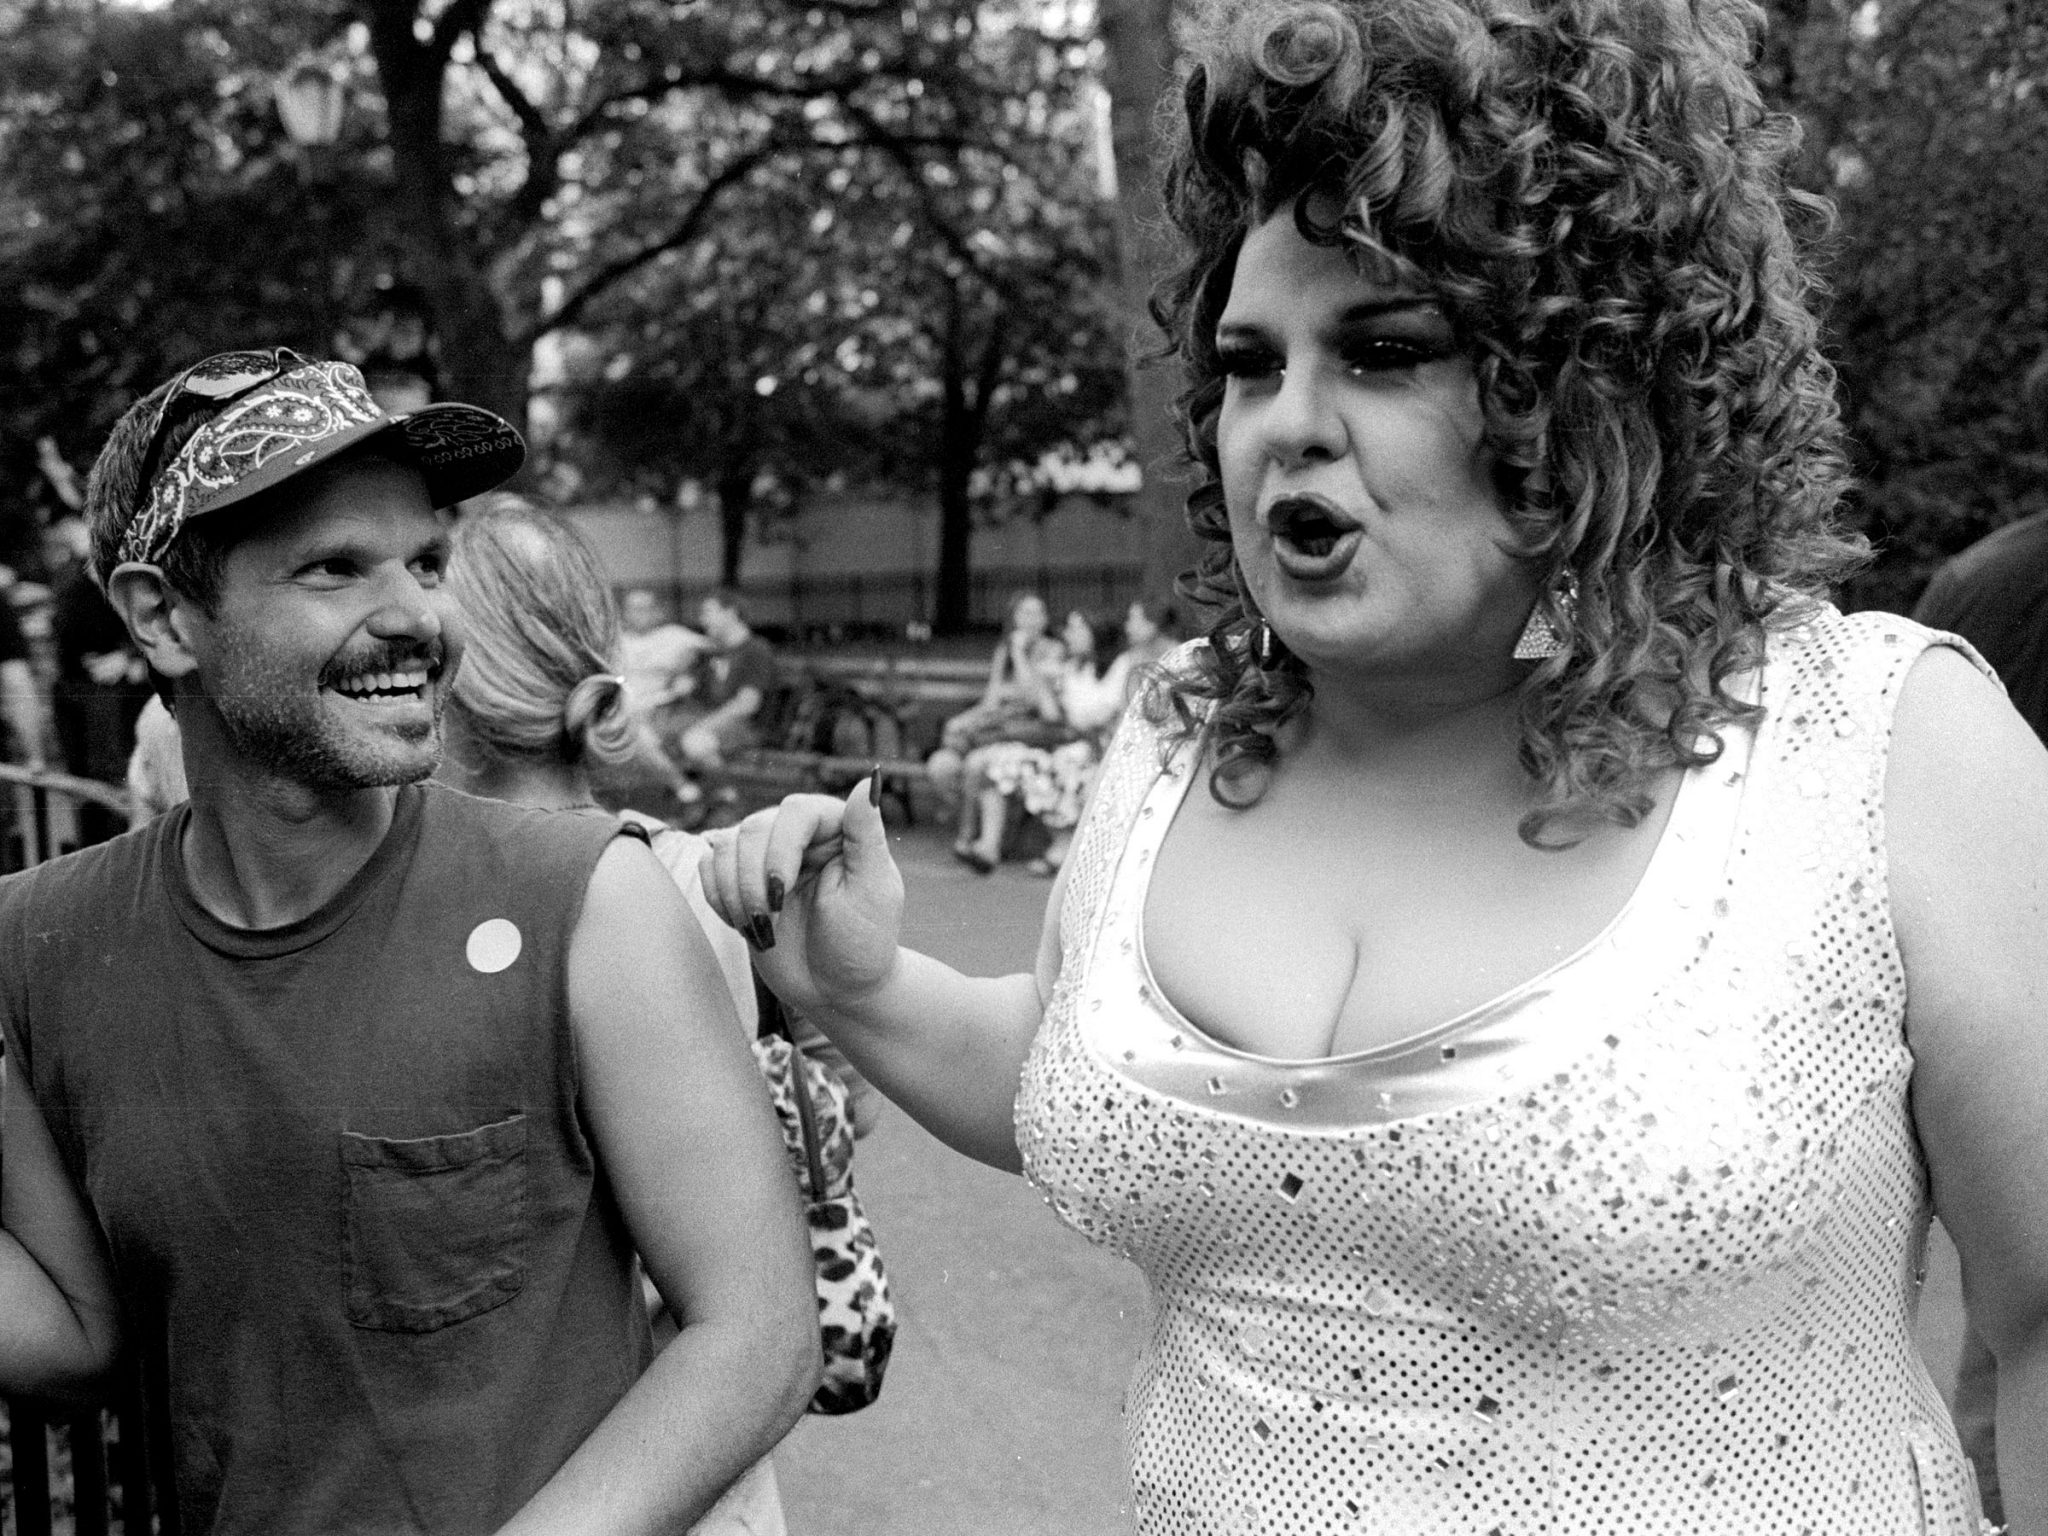 WIGSTOCK 2013, PRIDE, LGBTQ, transgender, drag queentranssexual,